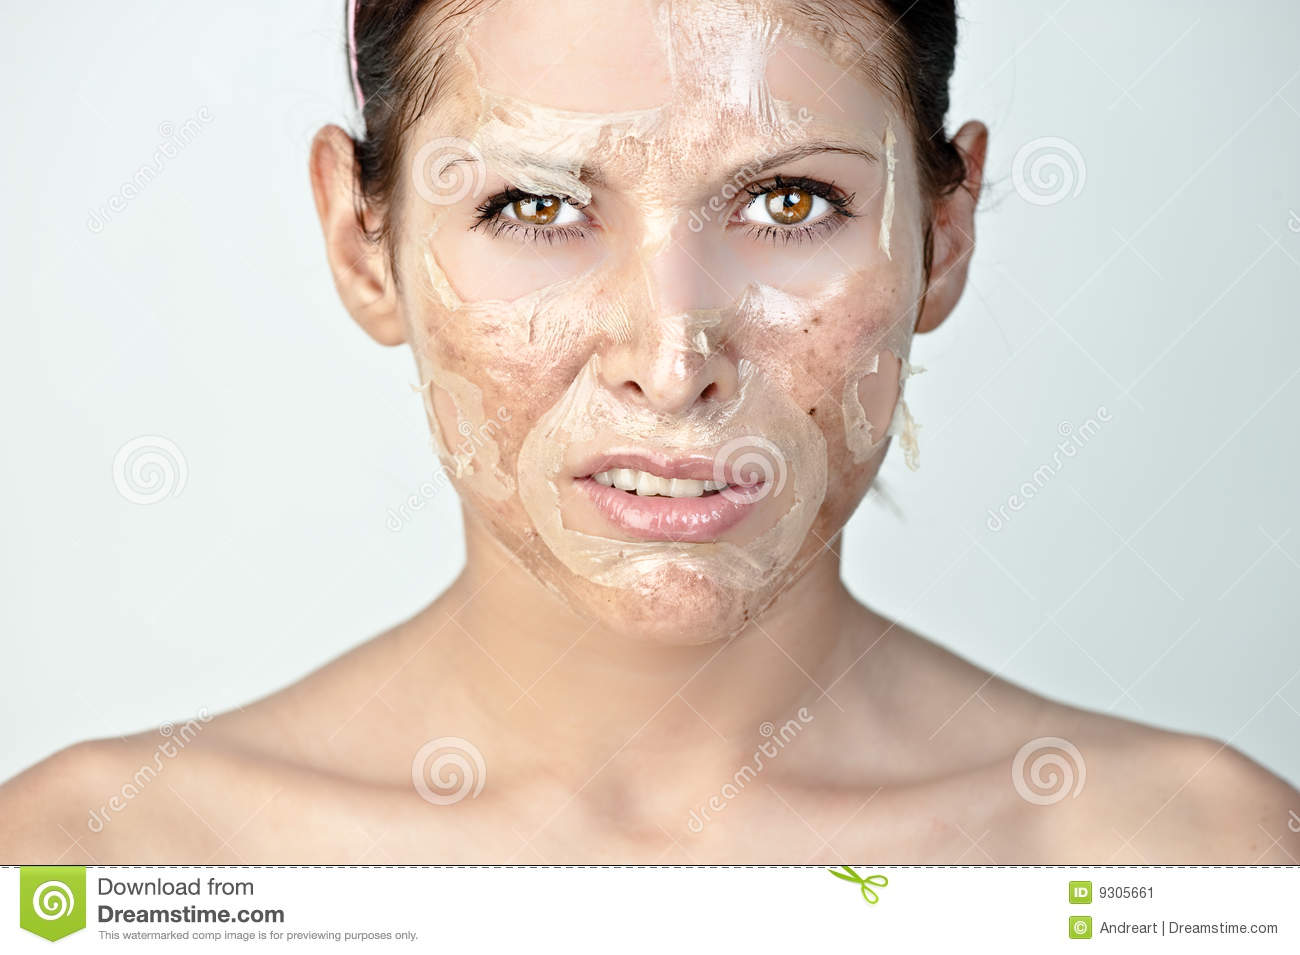 Facial skin peeling off